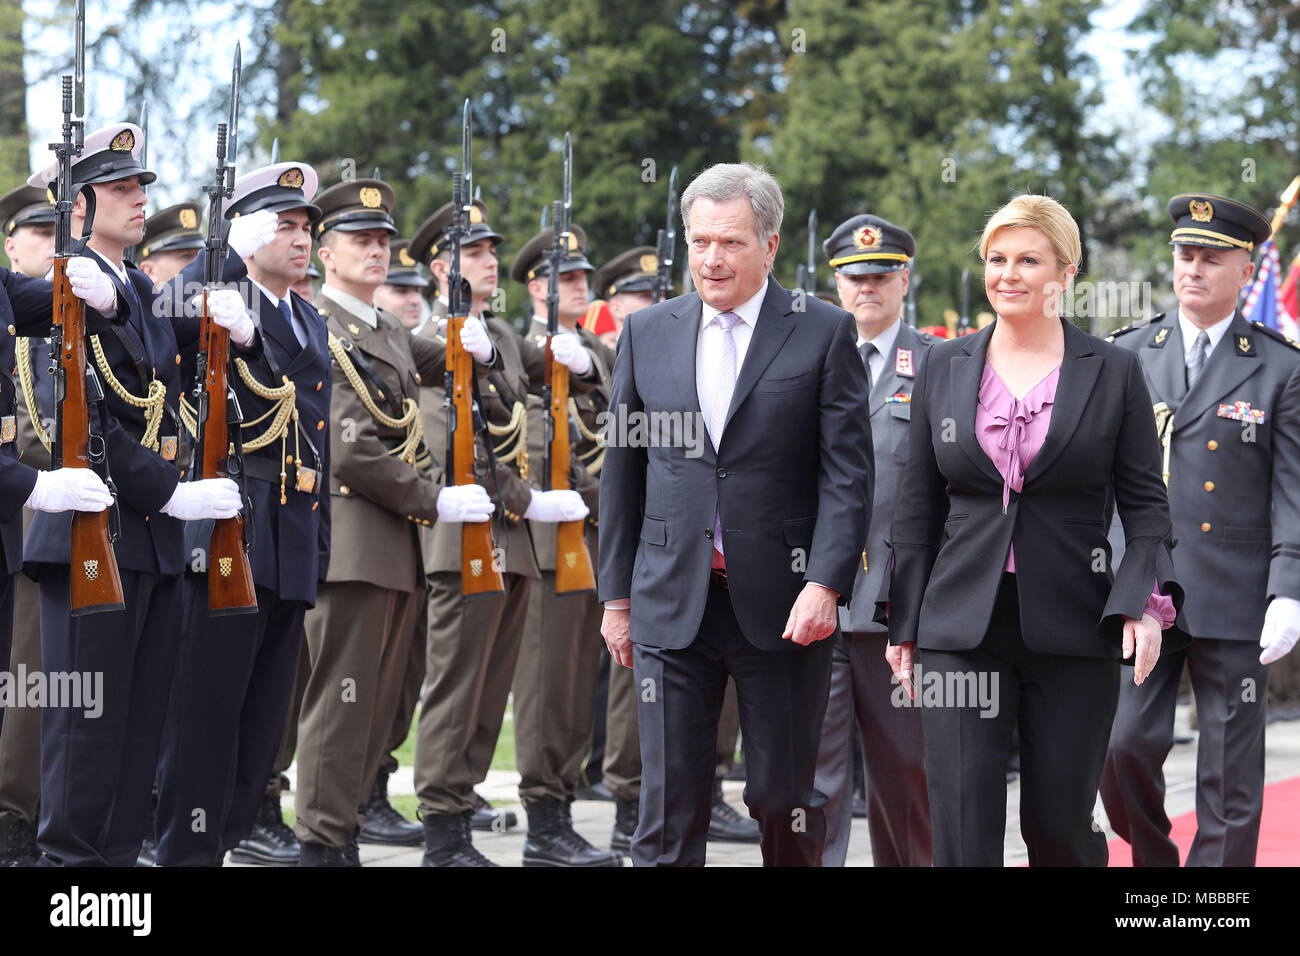 (180410) -- ZAGREB, April 10, 2018 (Xinhua) -- Visiting Finnish President Sauli Niinisto (L Front) and Croatian President Kolinda Grabar-Kitarovic (R Front) inspect the guard of honor during a welcoming ceremony in front of the Presidential Palace in Zagreb, capital of Croatia, on April 10, 2018. Sauli Niinisto is on a state visit to Croatia from Tuesday to Thursday. (Xinhua/Patrik Macek) (zjl) - Stock Image